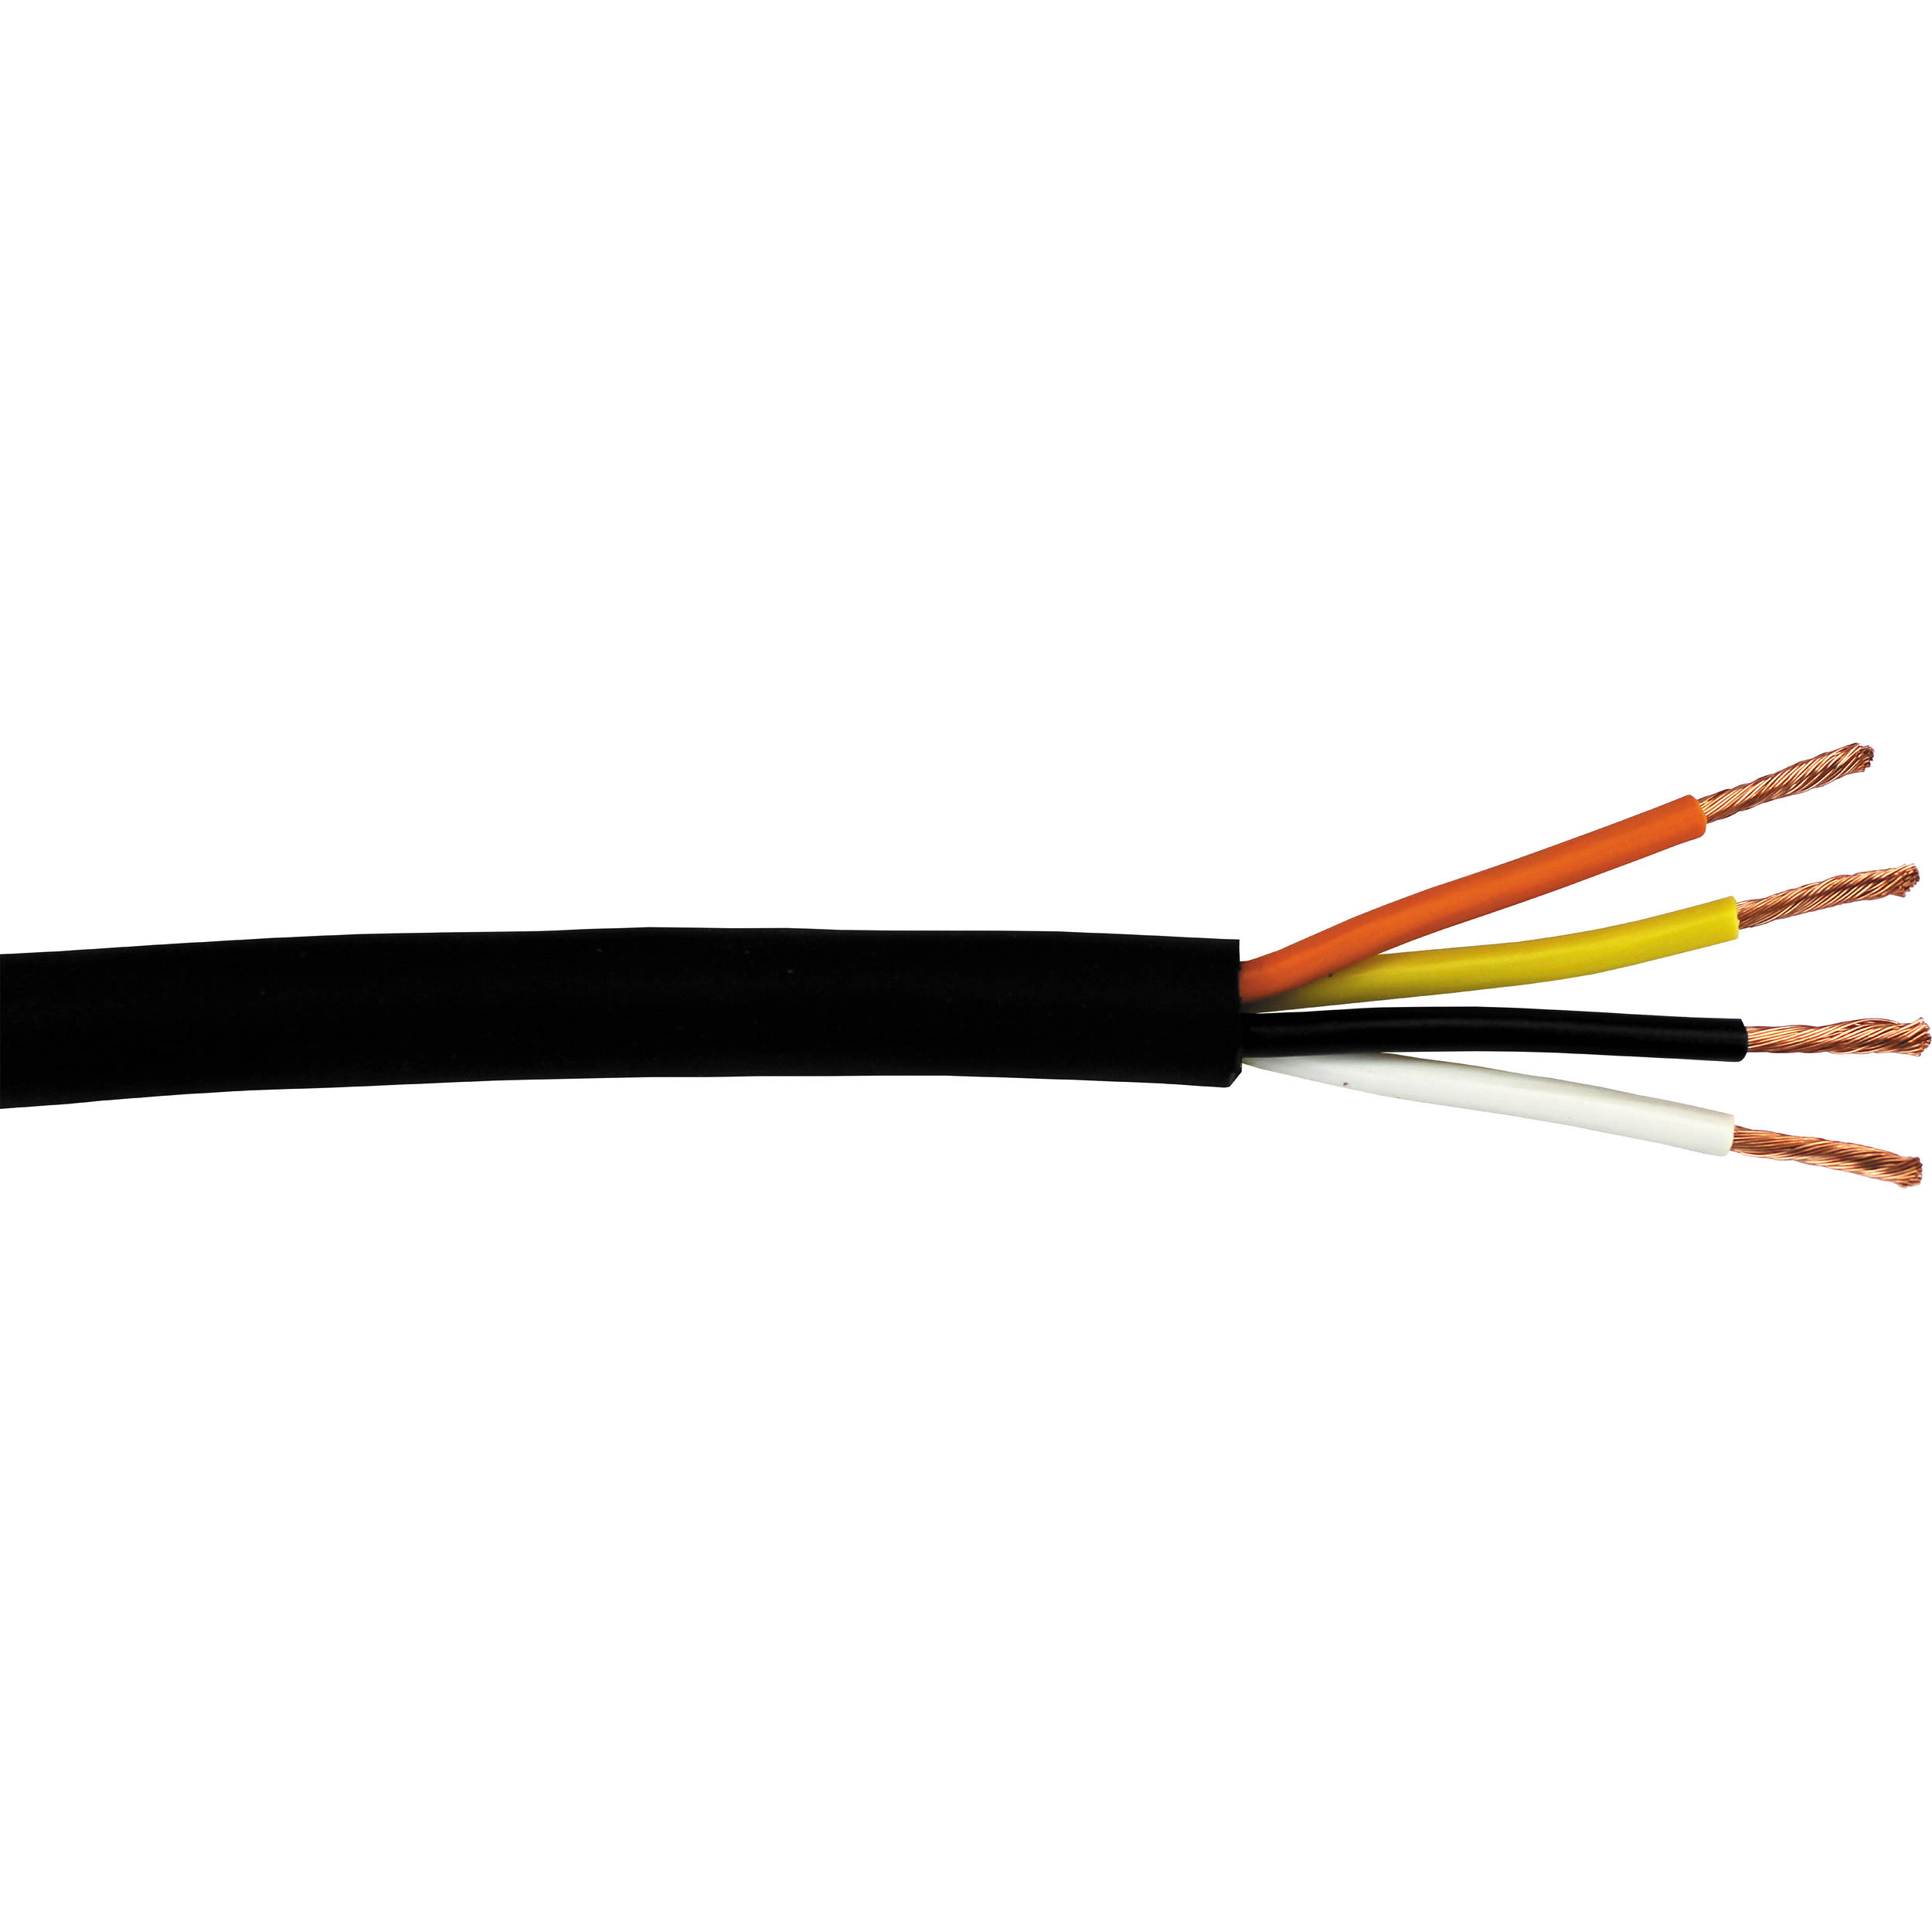 Rapcohorizon speaker4 4 conductor 13 awg stranded speaker4 250 rapcohorizon speaker4 4 conductor 13 awg stranded bare copper unshielded speaker wire 250 greentooth